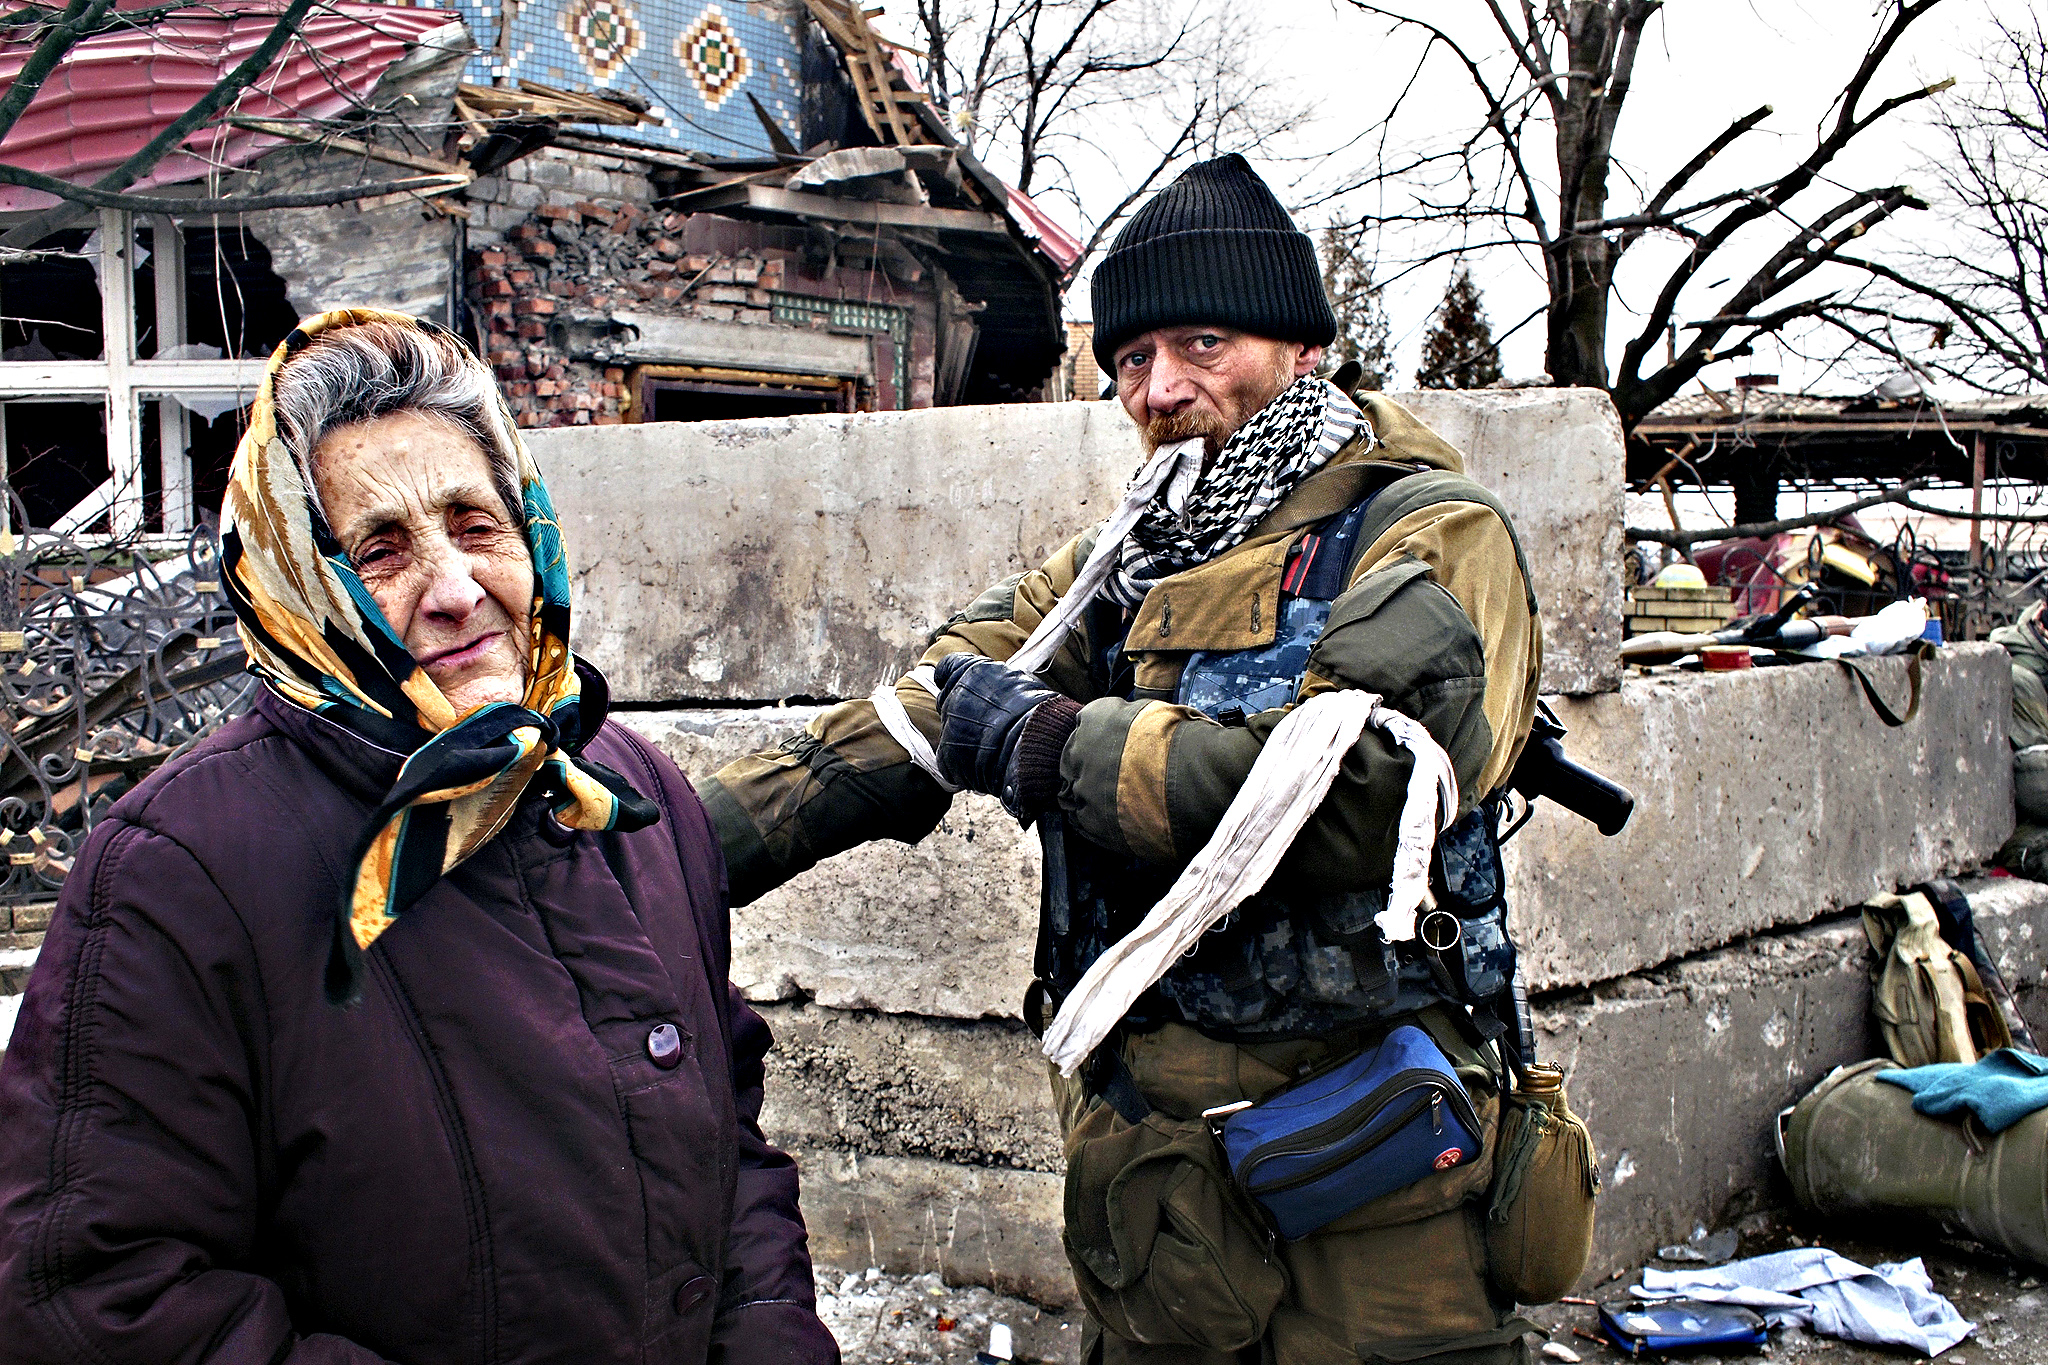 A pro-Russian rebel takes a ribbon from his arm in Debaltseve, eastern Ukraine on Thursday, Feb. 19, 2015. The ribbons are used as a form of identification. After weeks of relentless fighting, the embattled Ukrainian rail hub of Debaltseve fell Wednesday to Russia-backed separatists, who hoisted a flag in triumph over the town. The Ukrainian president confirmed that he had ordered troops to pull out and the rebels reported taking hundreds of soldiers captive.